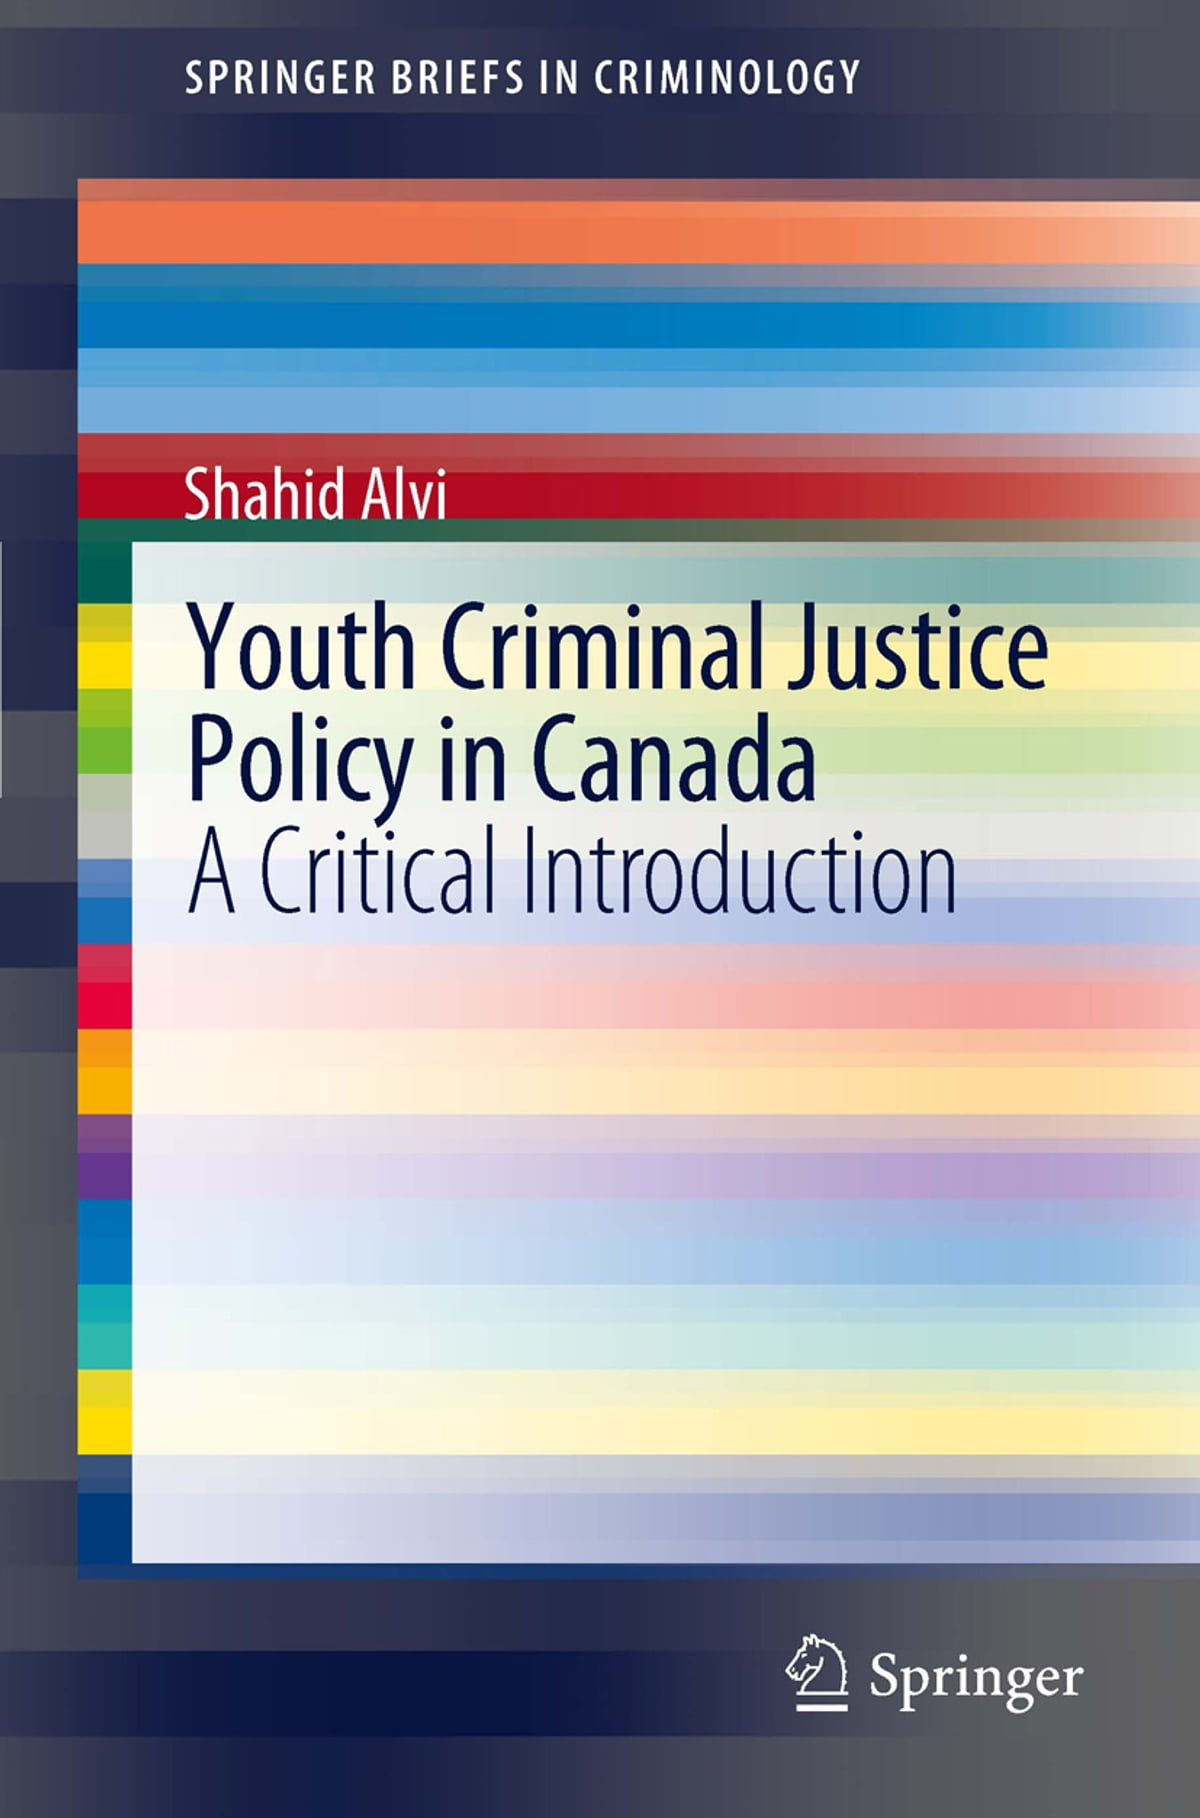 Youth criminal justice policy in canada ebook by shahid alvi youth criminal justice policy in canada ebook by shahid alvi 9781441902733 rakuten kobo fandeluxe Image collections